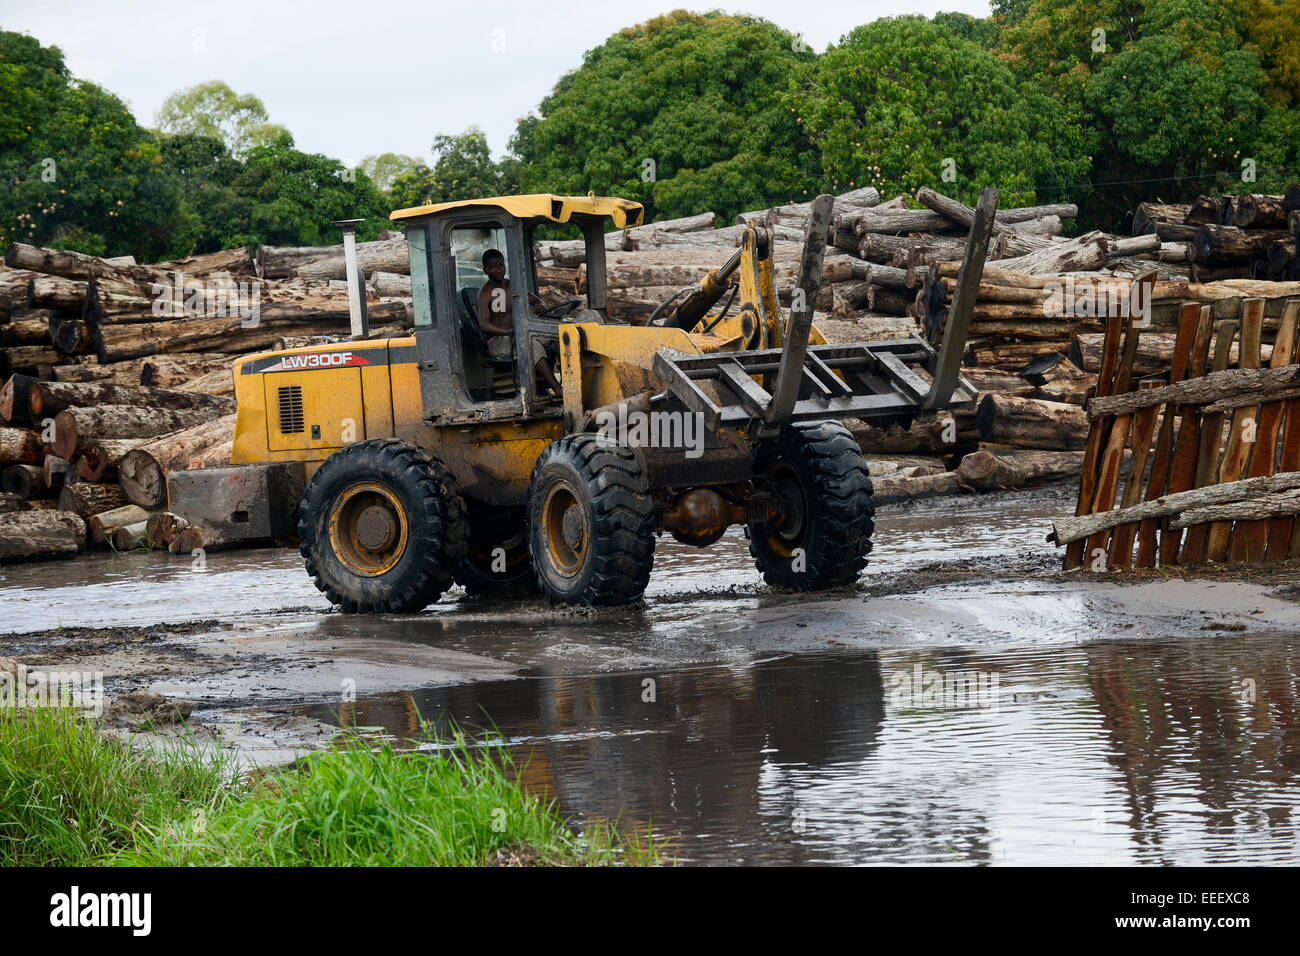 MOZAMBIQUE, Beira, timber trade of chinese companies for export to China, storage place for logged trees from Tete - Stock Image